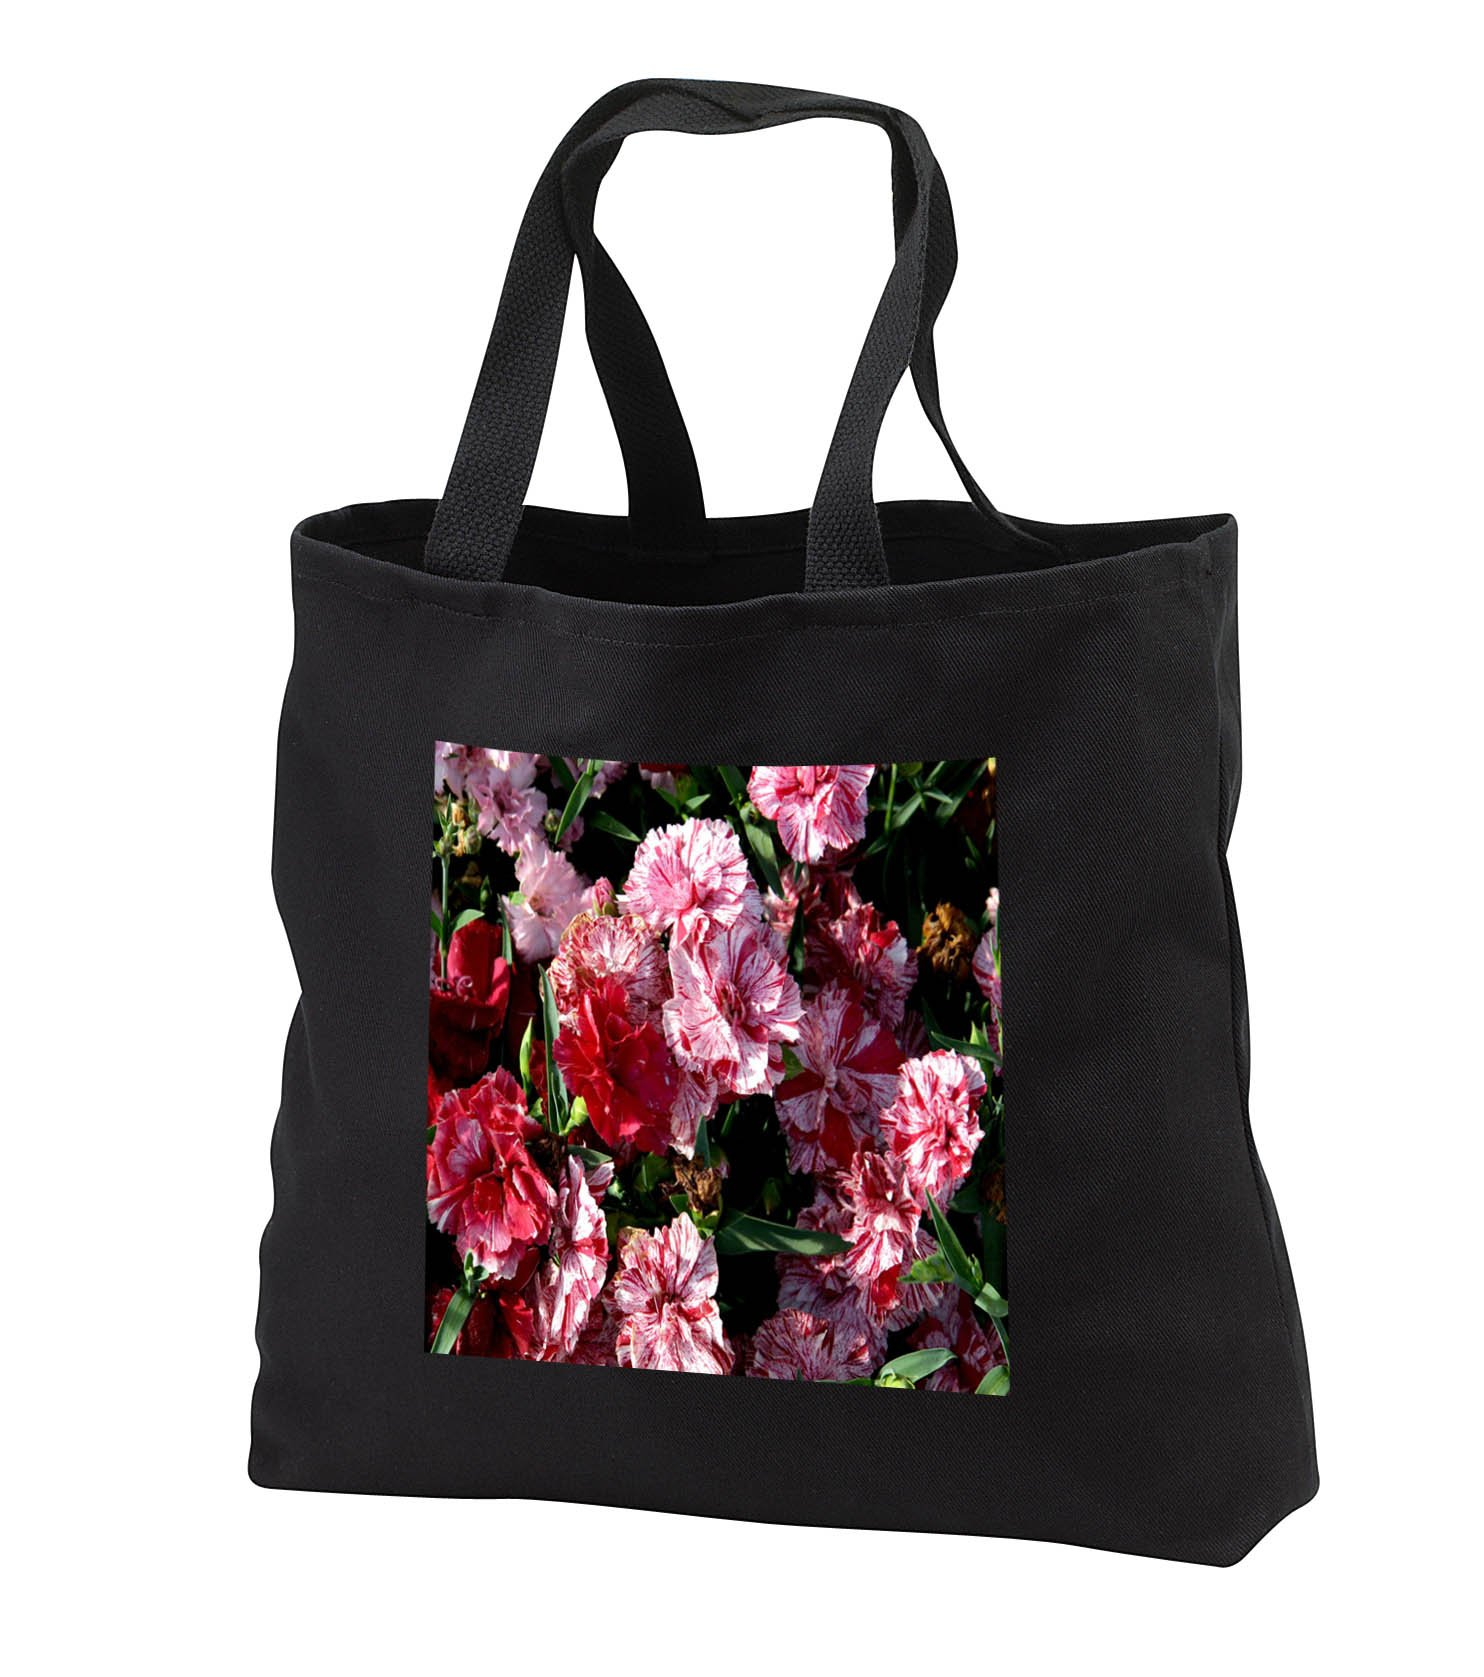 TDSwhite – Summer Seasonal Nature Photos - Floral Traditional Wedding Carnations - Tote Bags - Black Tote Bag 14w x 14h x 3d (tb_284614_1)